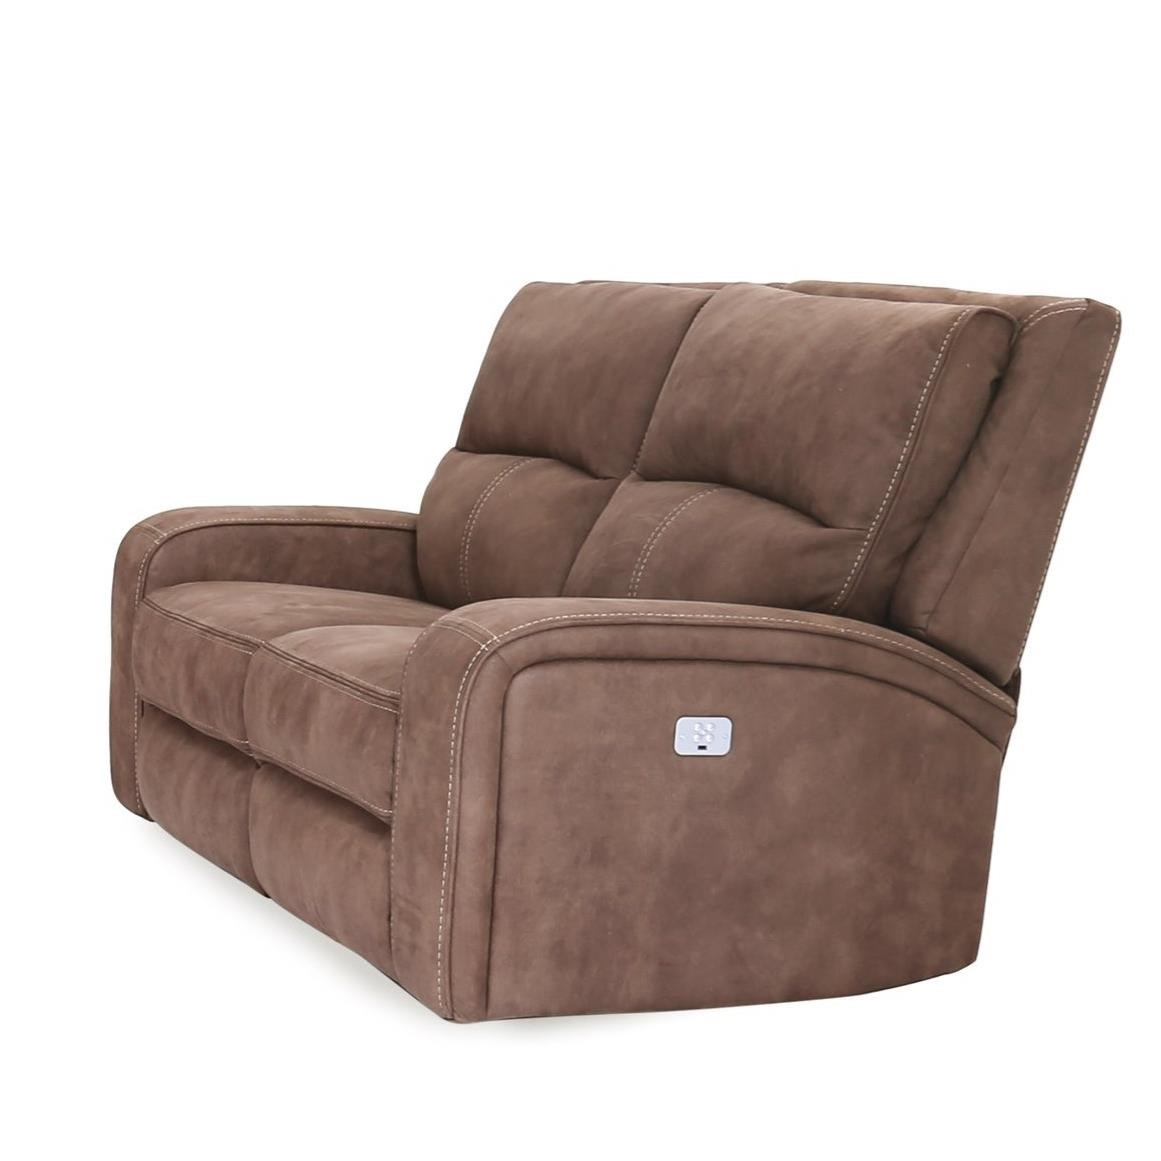 5168HM Reclining Loveseat by Cheers at Beck's Furniture